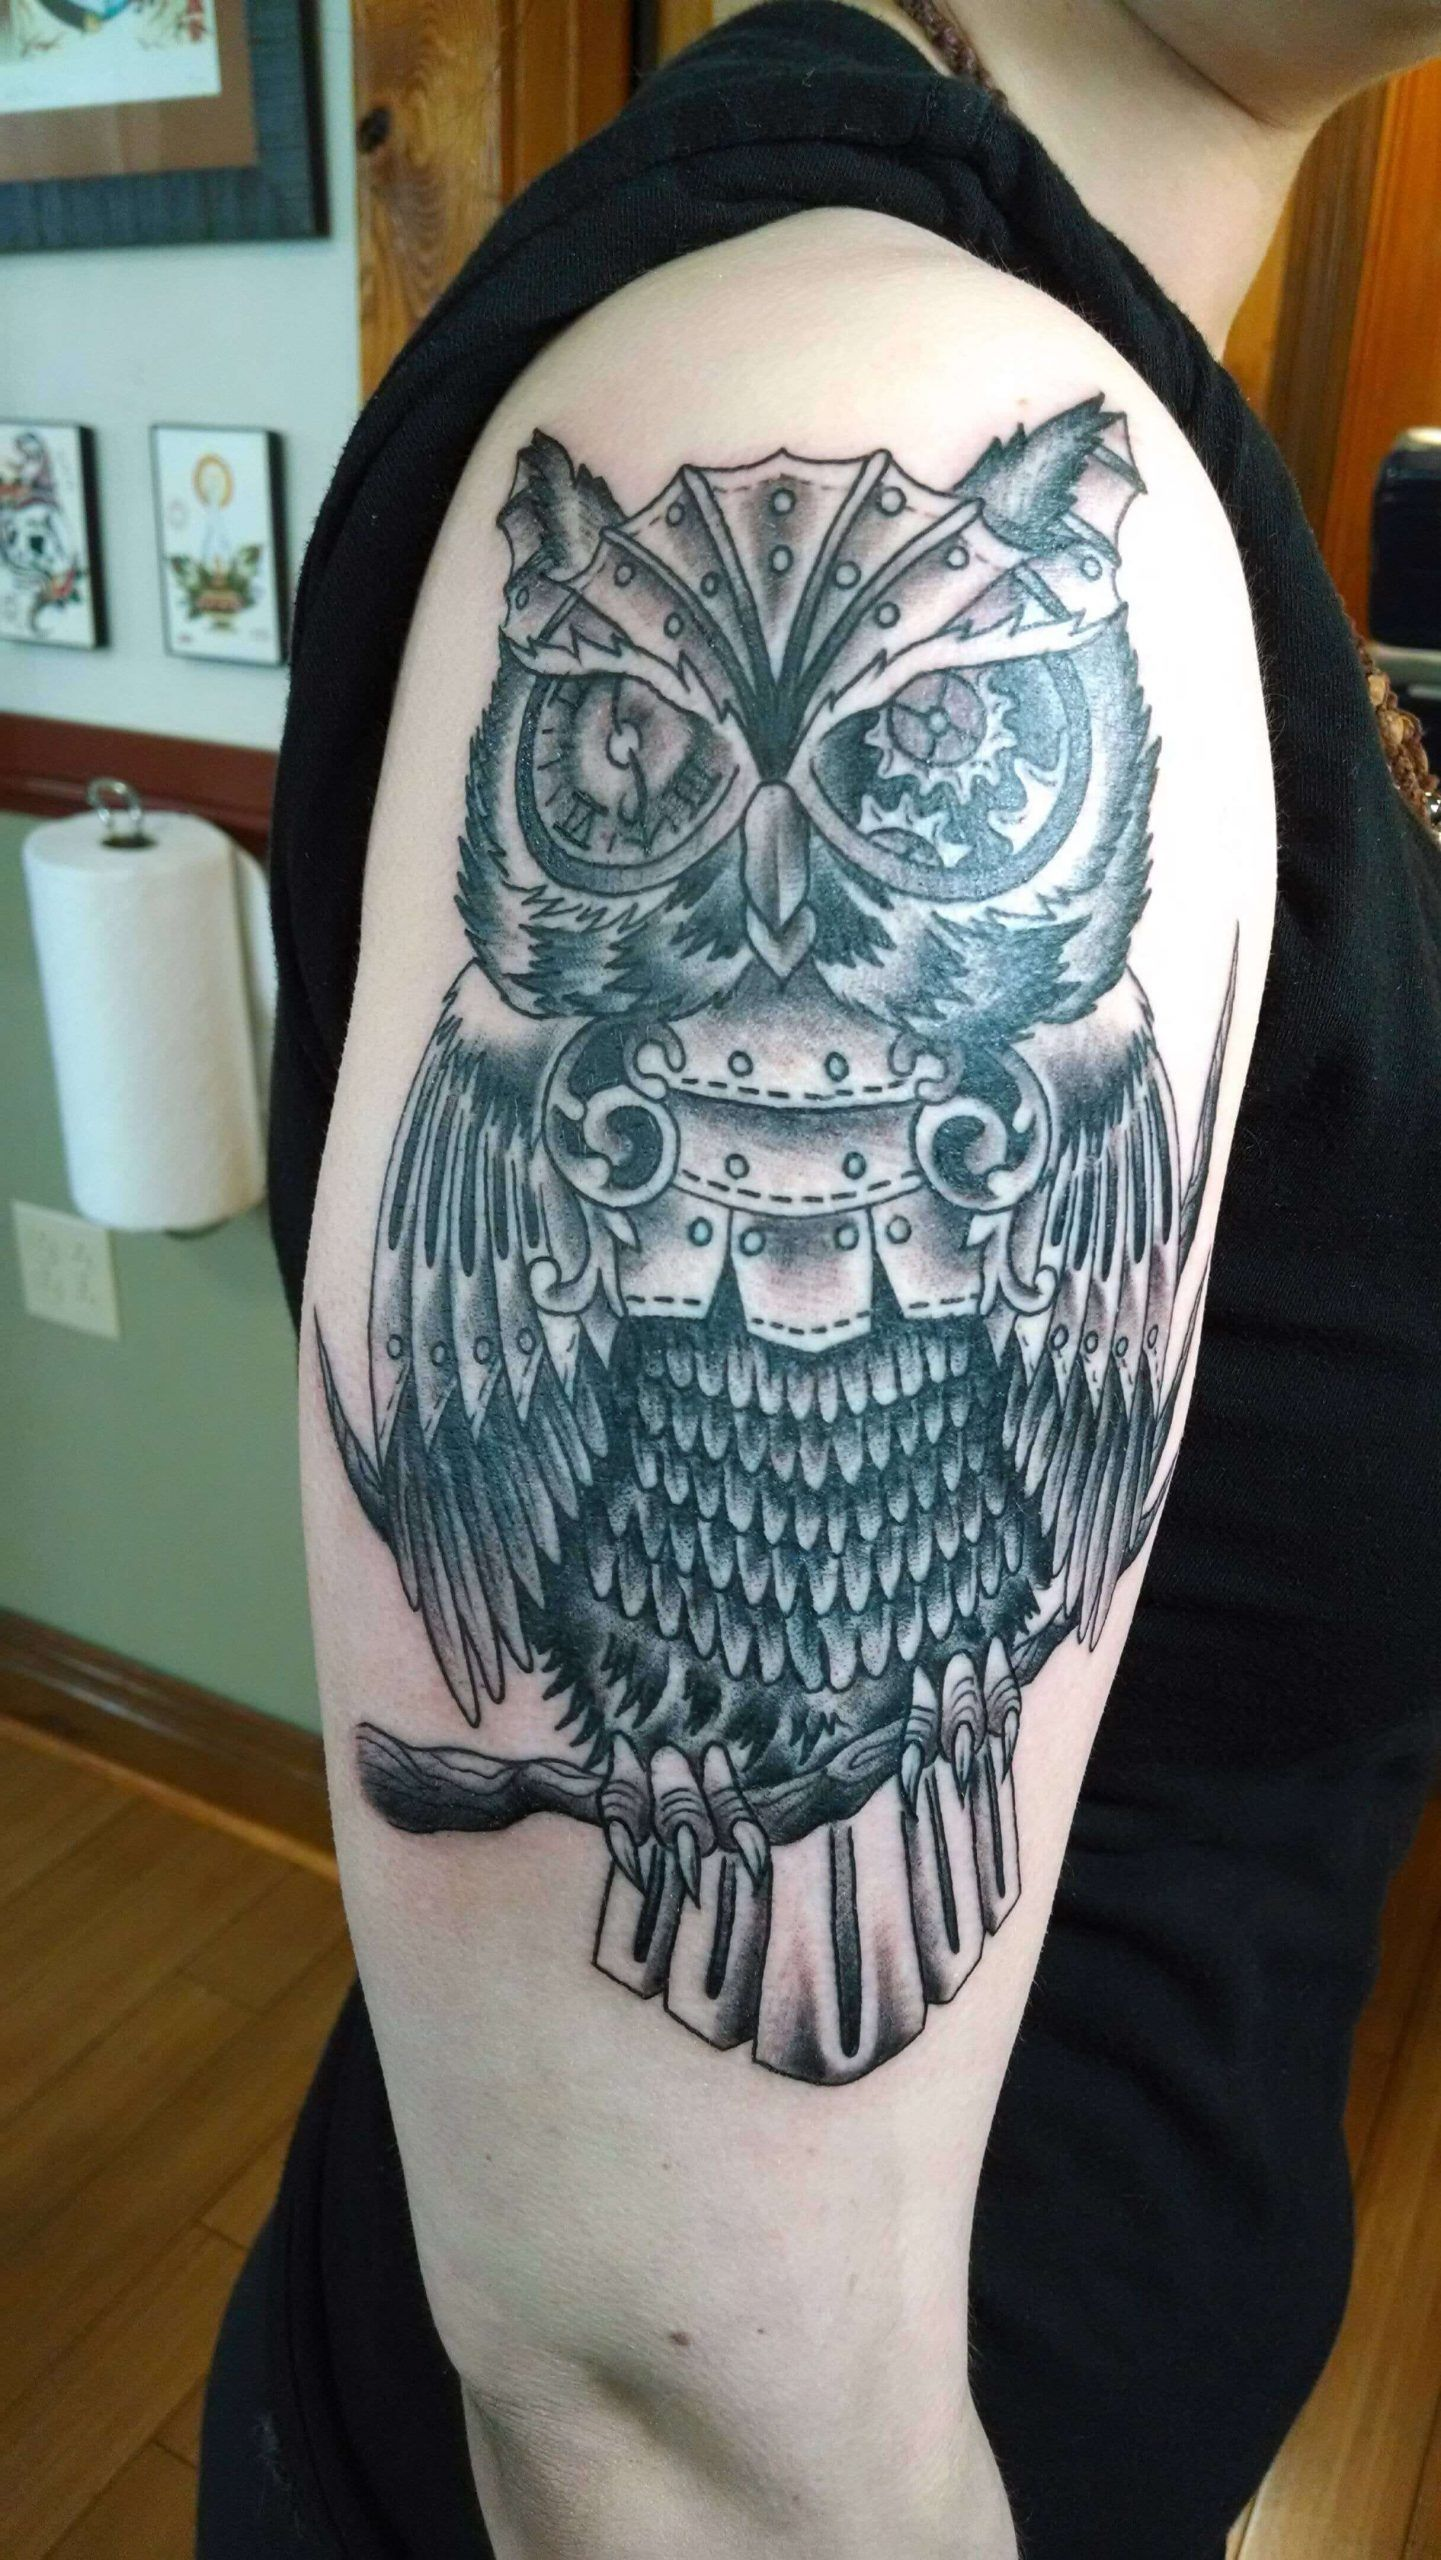 This Is A Mechanical Steampunk Owl Tattoo I Designed For Niels Huegen Copyright Www Samphillips Co Nz Owl Tattoo Design Owl Tattoo Chest Zombie Tattoos